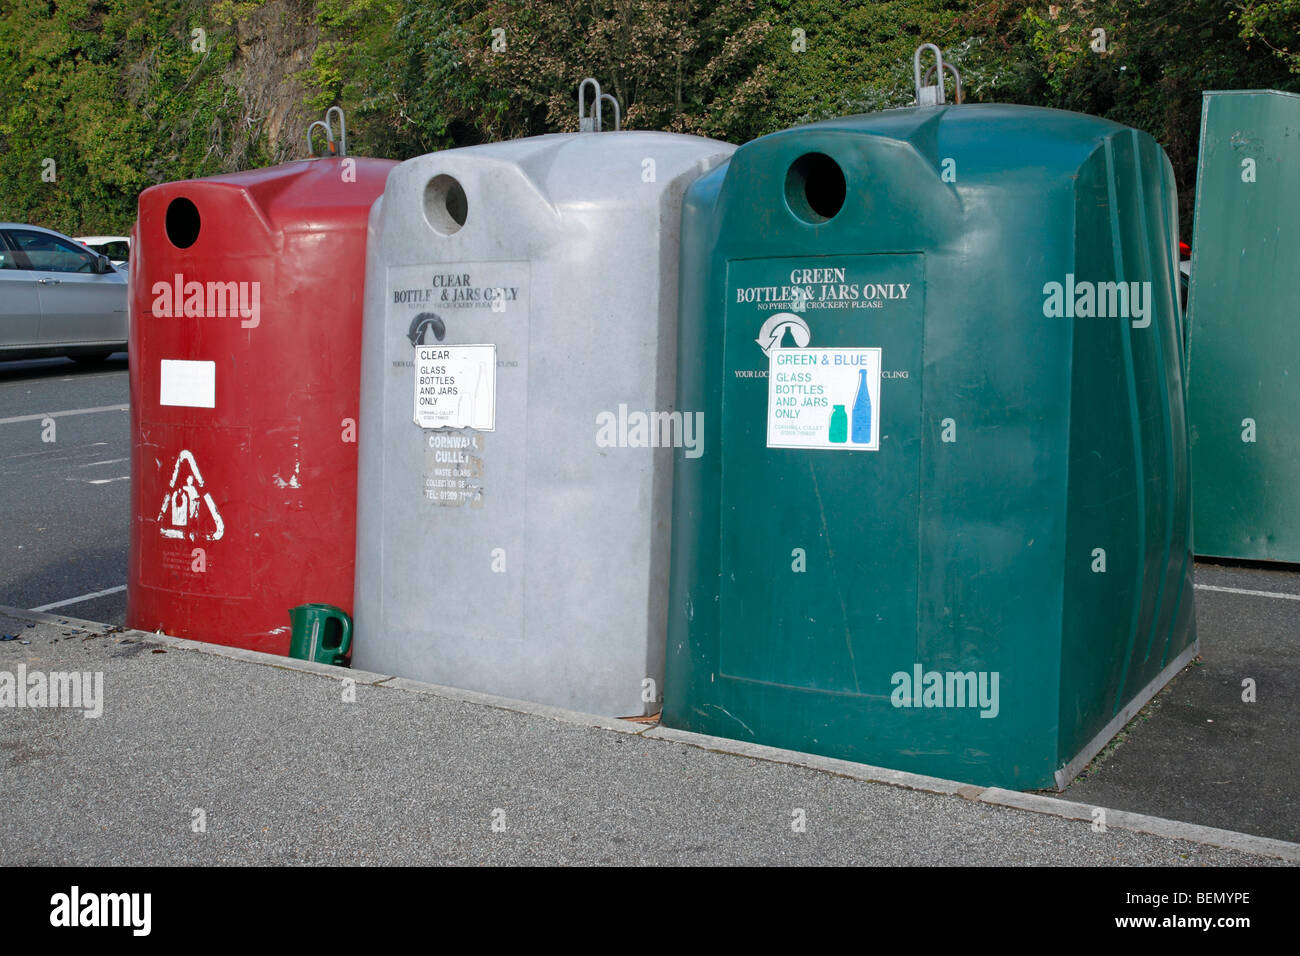 Three glass bottle and jar recycling bins in a car park. - Stock Image